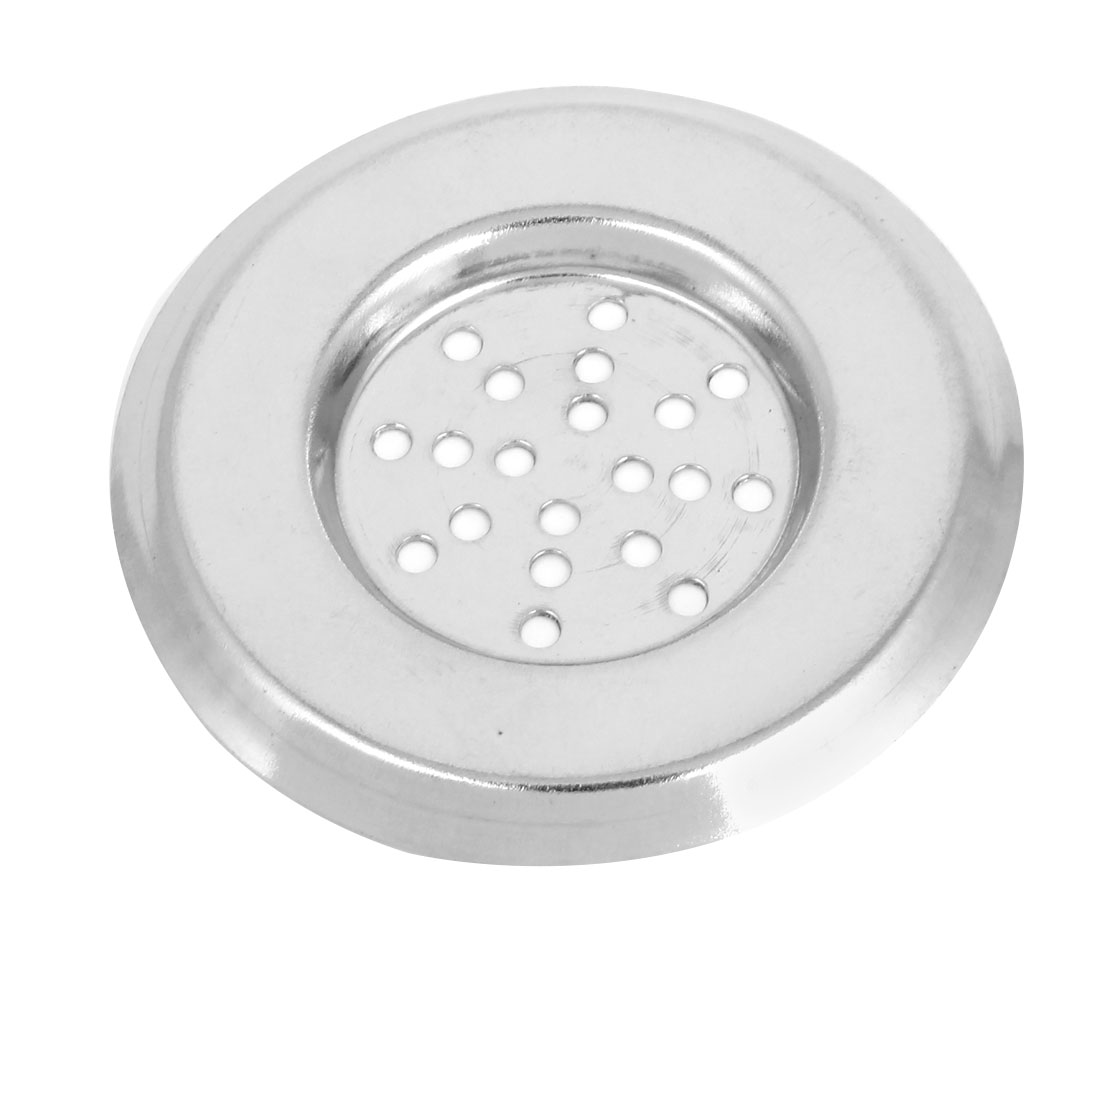 Kitchen Bathroom Sink Bath Basin Disposal Filter Drain Strainers